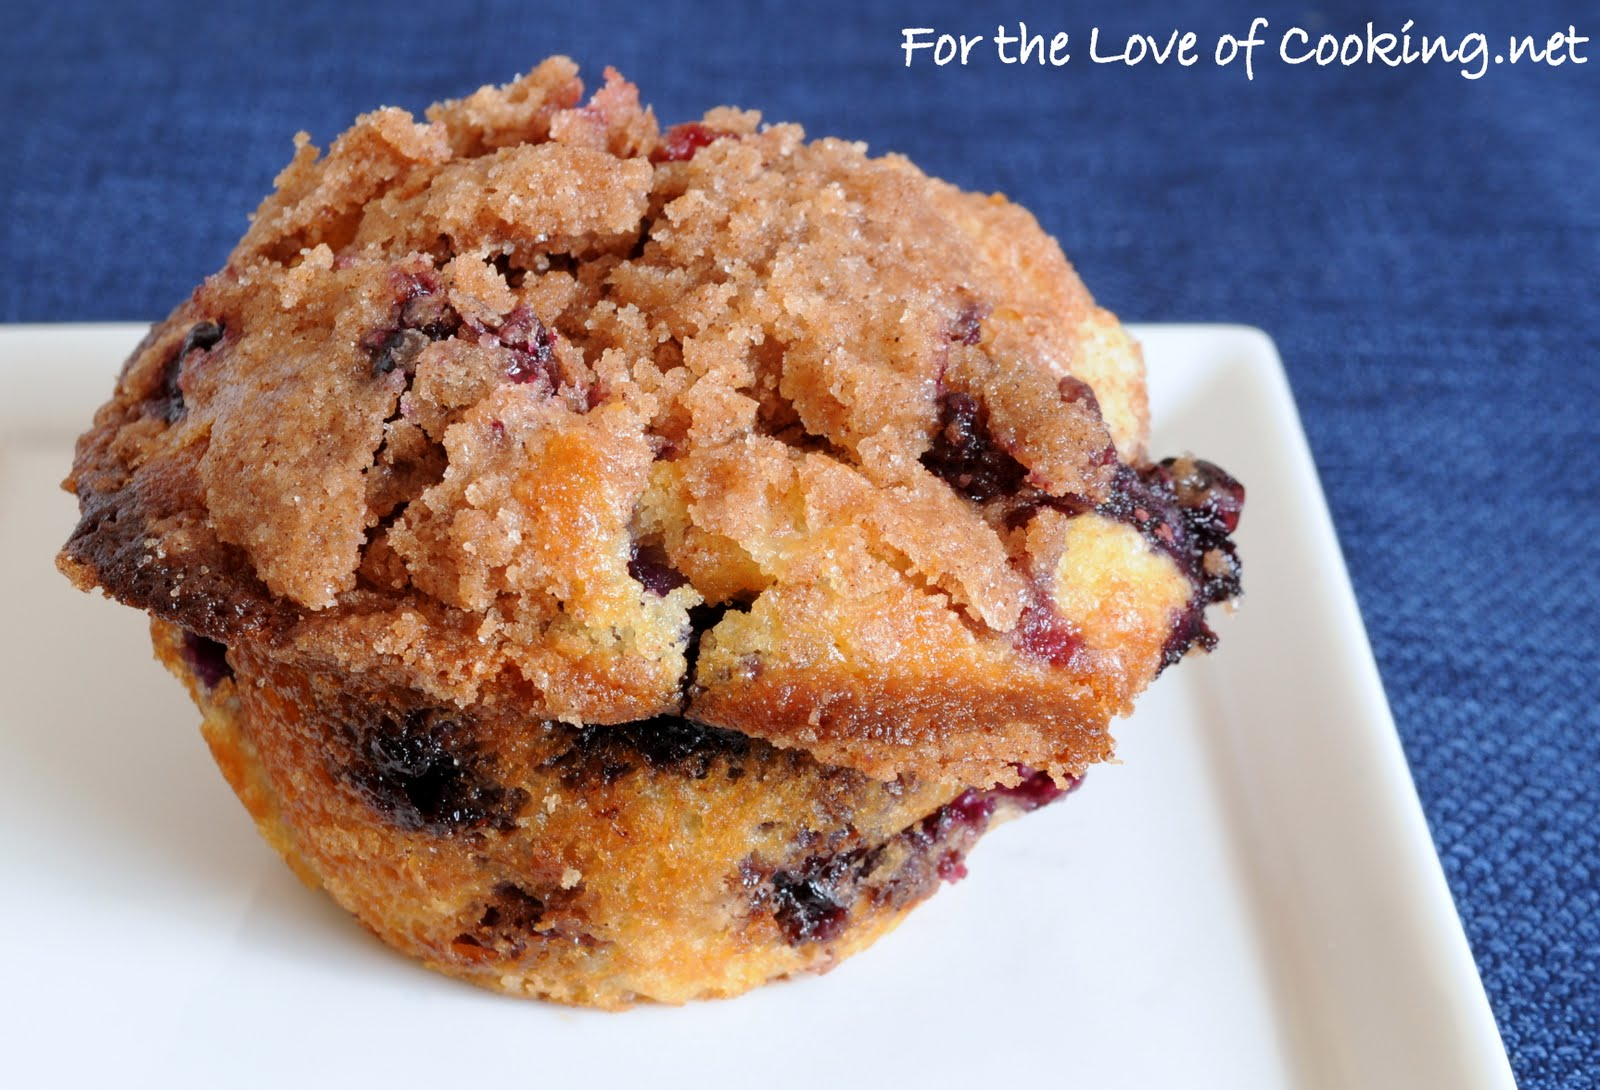 Blueberry Coffee Cake Muffins | For the Love of Cooking